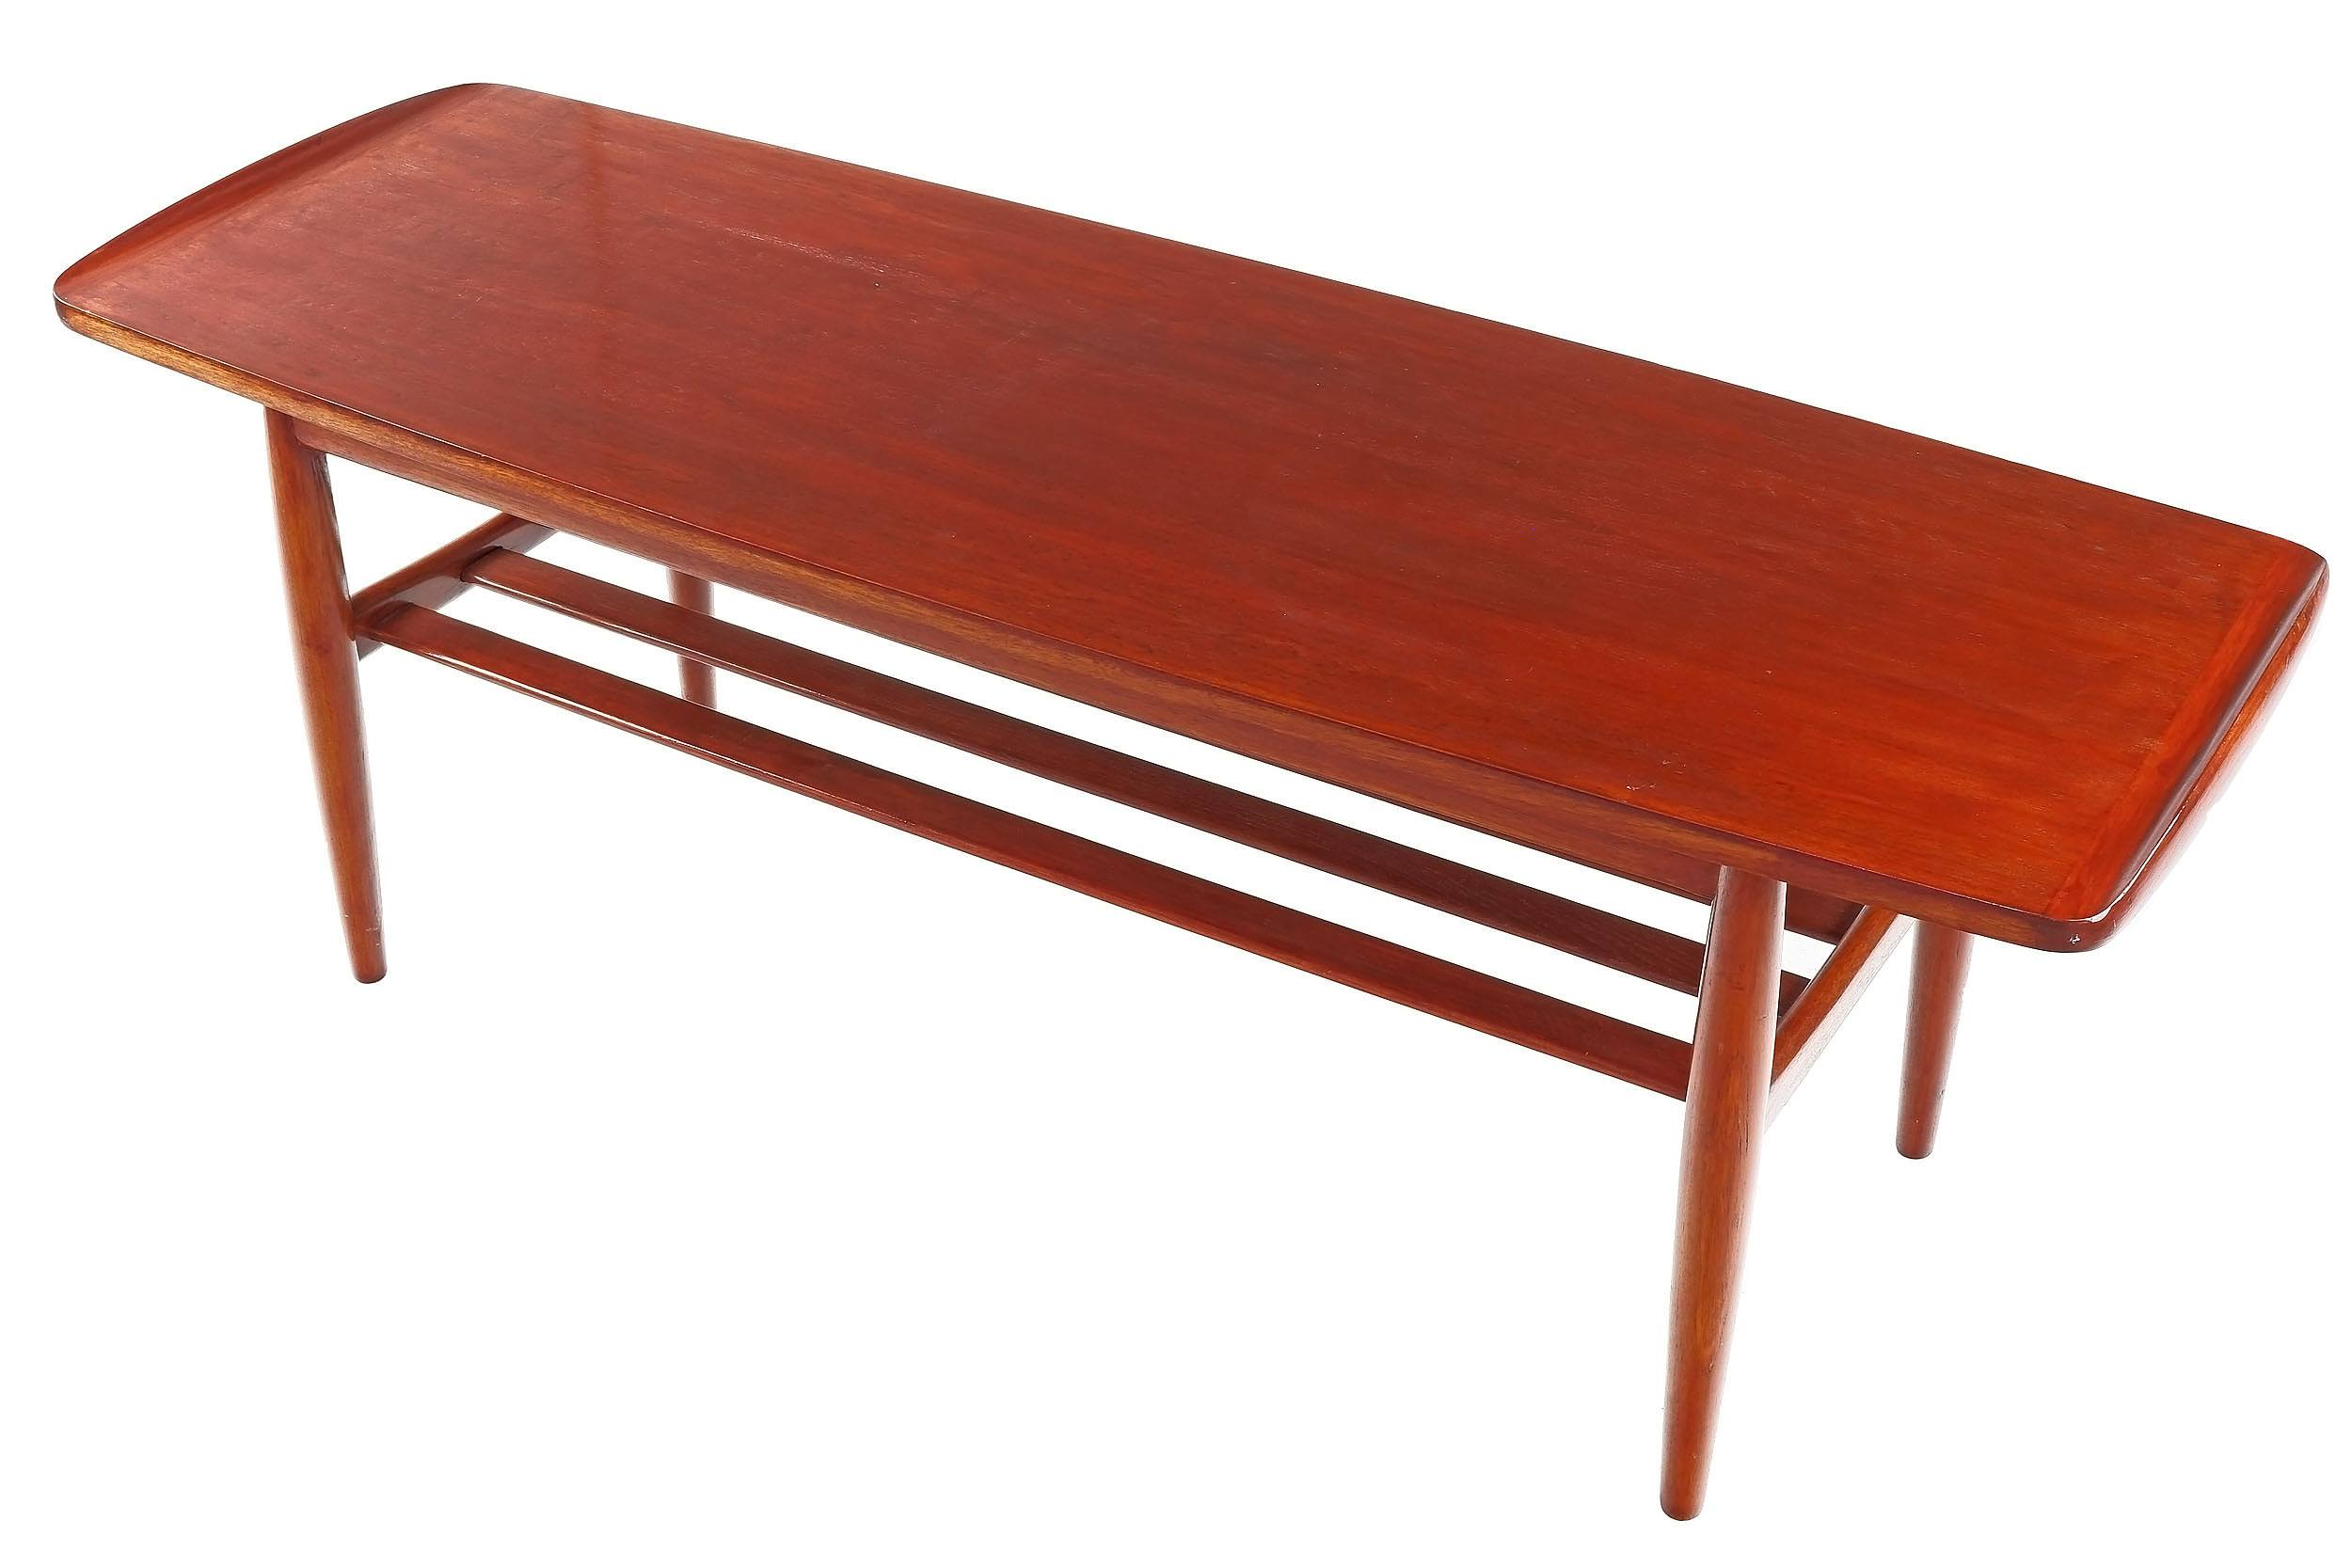 'Retro Teak Coffee Table with Magazine Shelf Below'